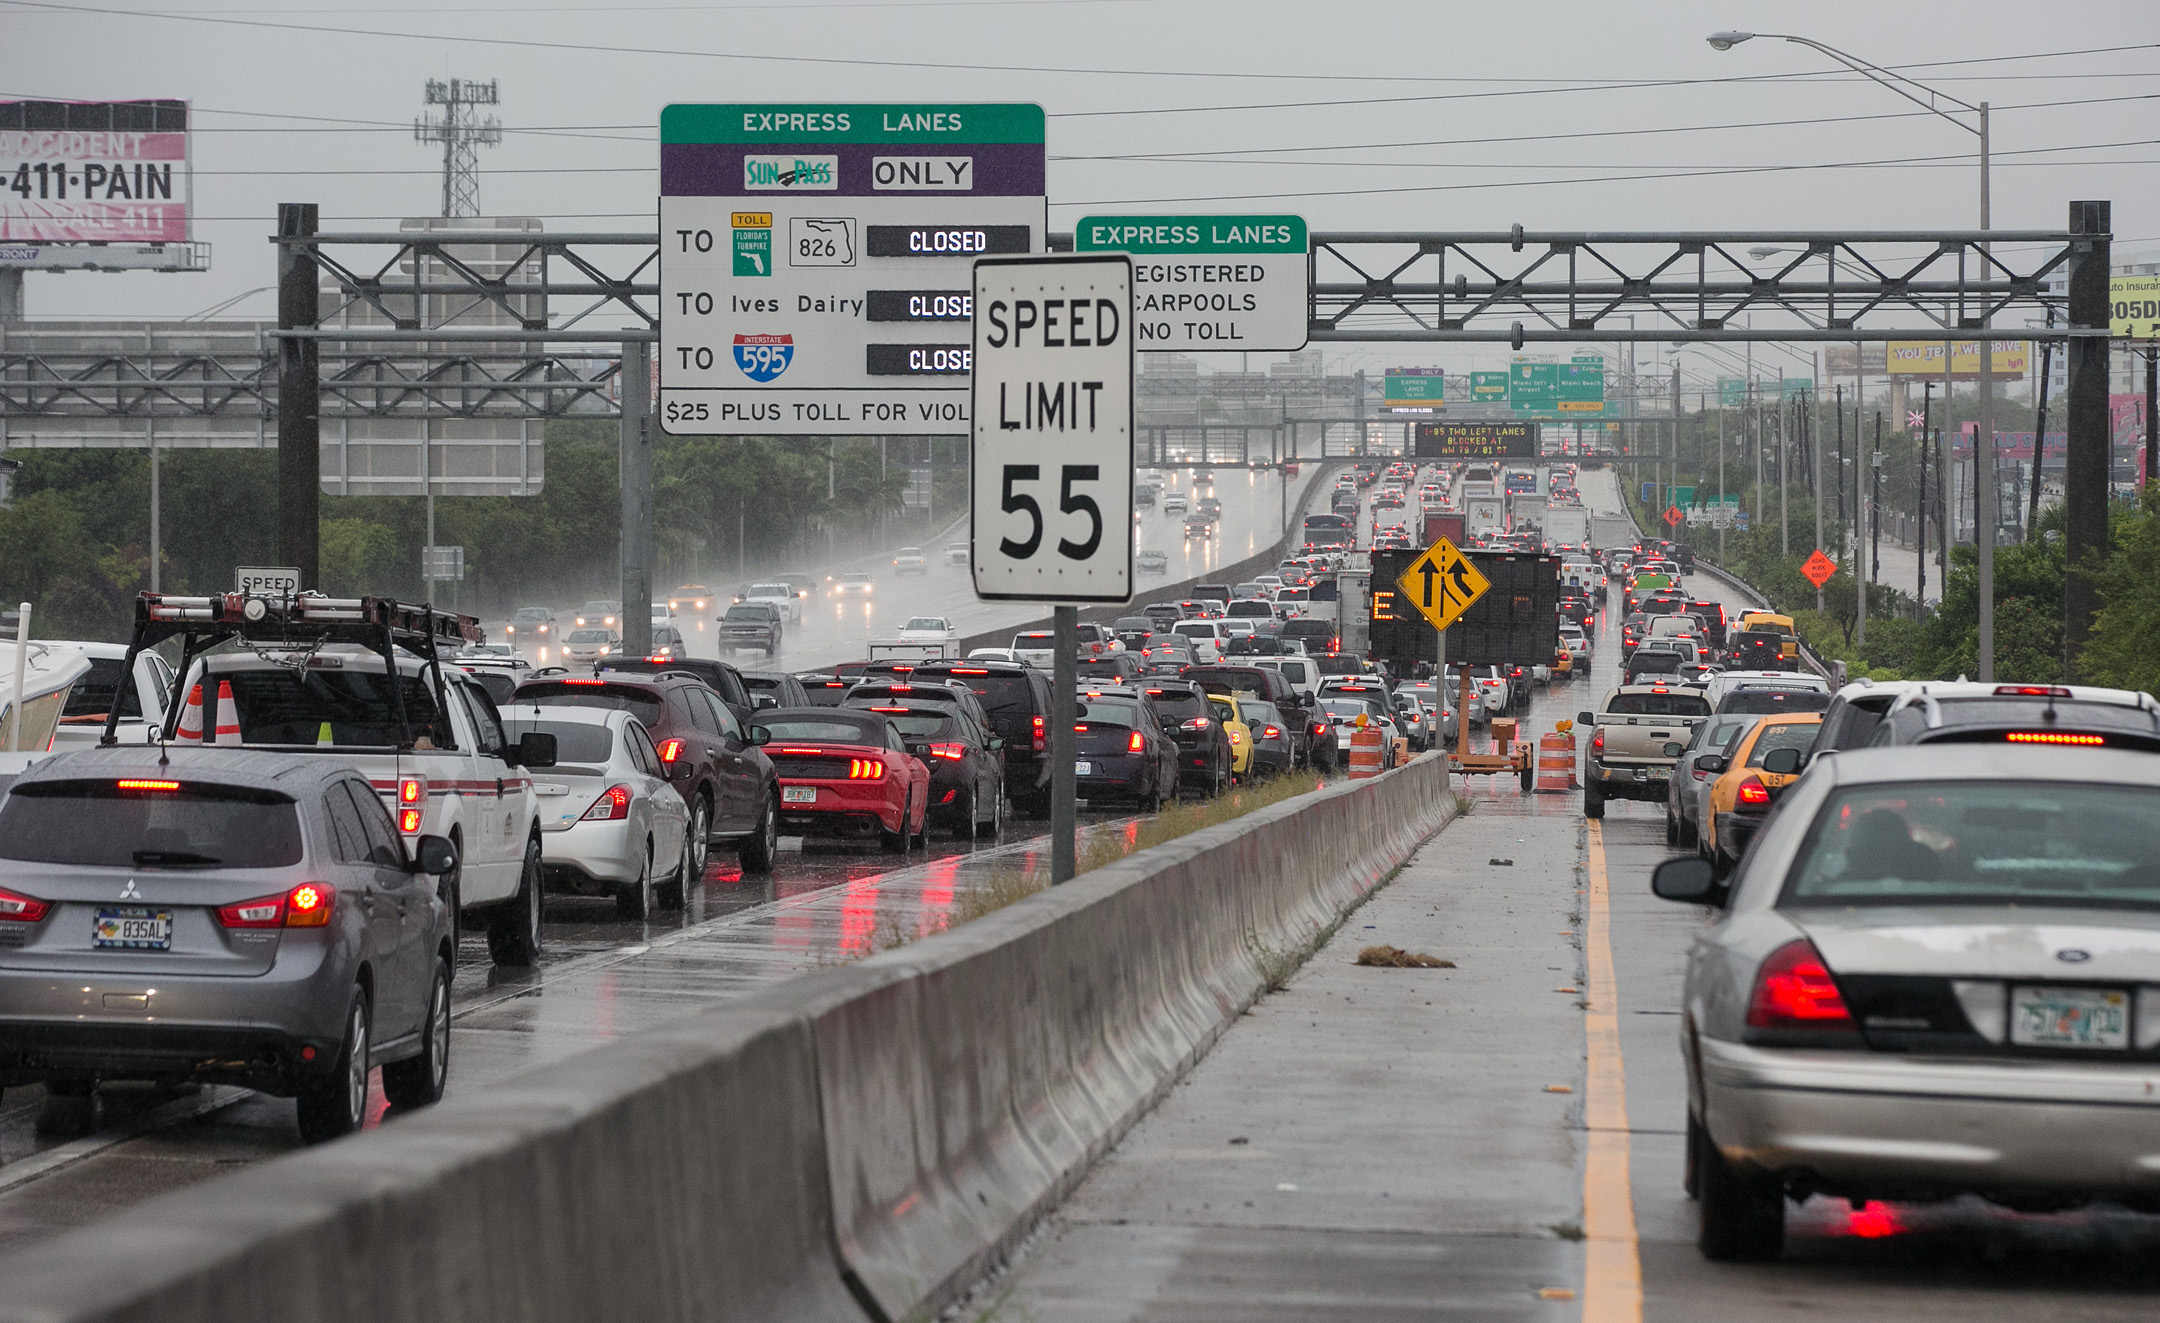 <div class='meta'><div class='origin-logo' data-origin='none'></div><span class='caption-text' data-credit='David Santiago/Miami Herald/TNS via Getty Images'>The I-95 Northbound is jammed bumper-to-bumper traffic as Tropical Storm Gordon passes by South Florida with wind gusts and heavy rainfall for the Labor Day holiday on Monday.</span></div>